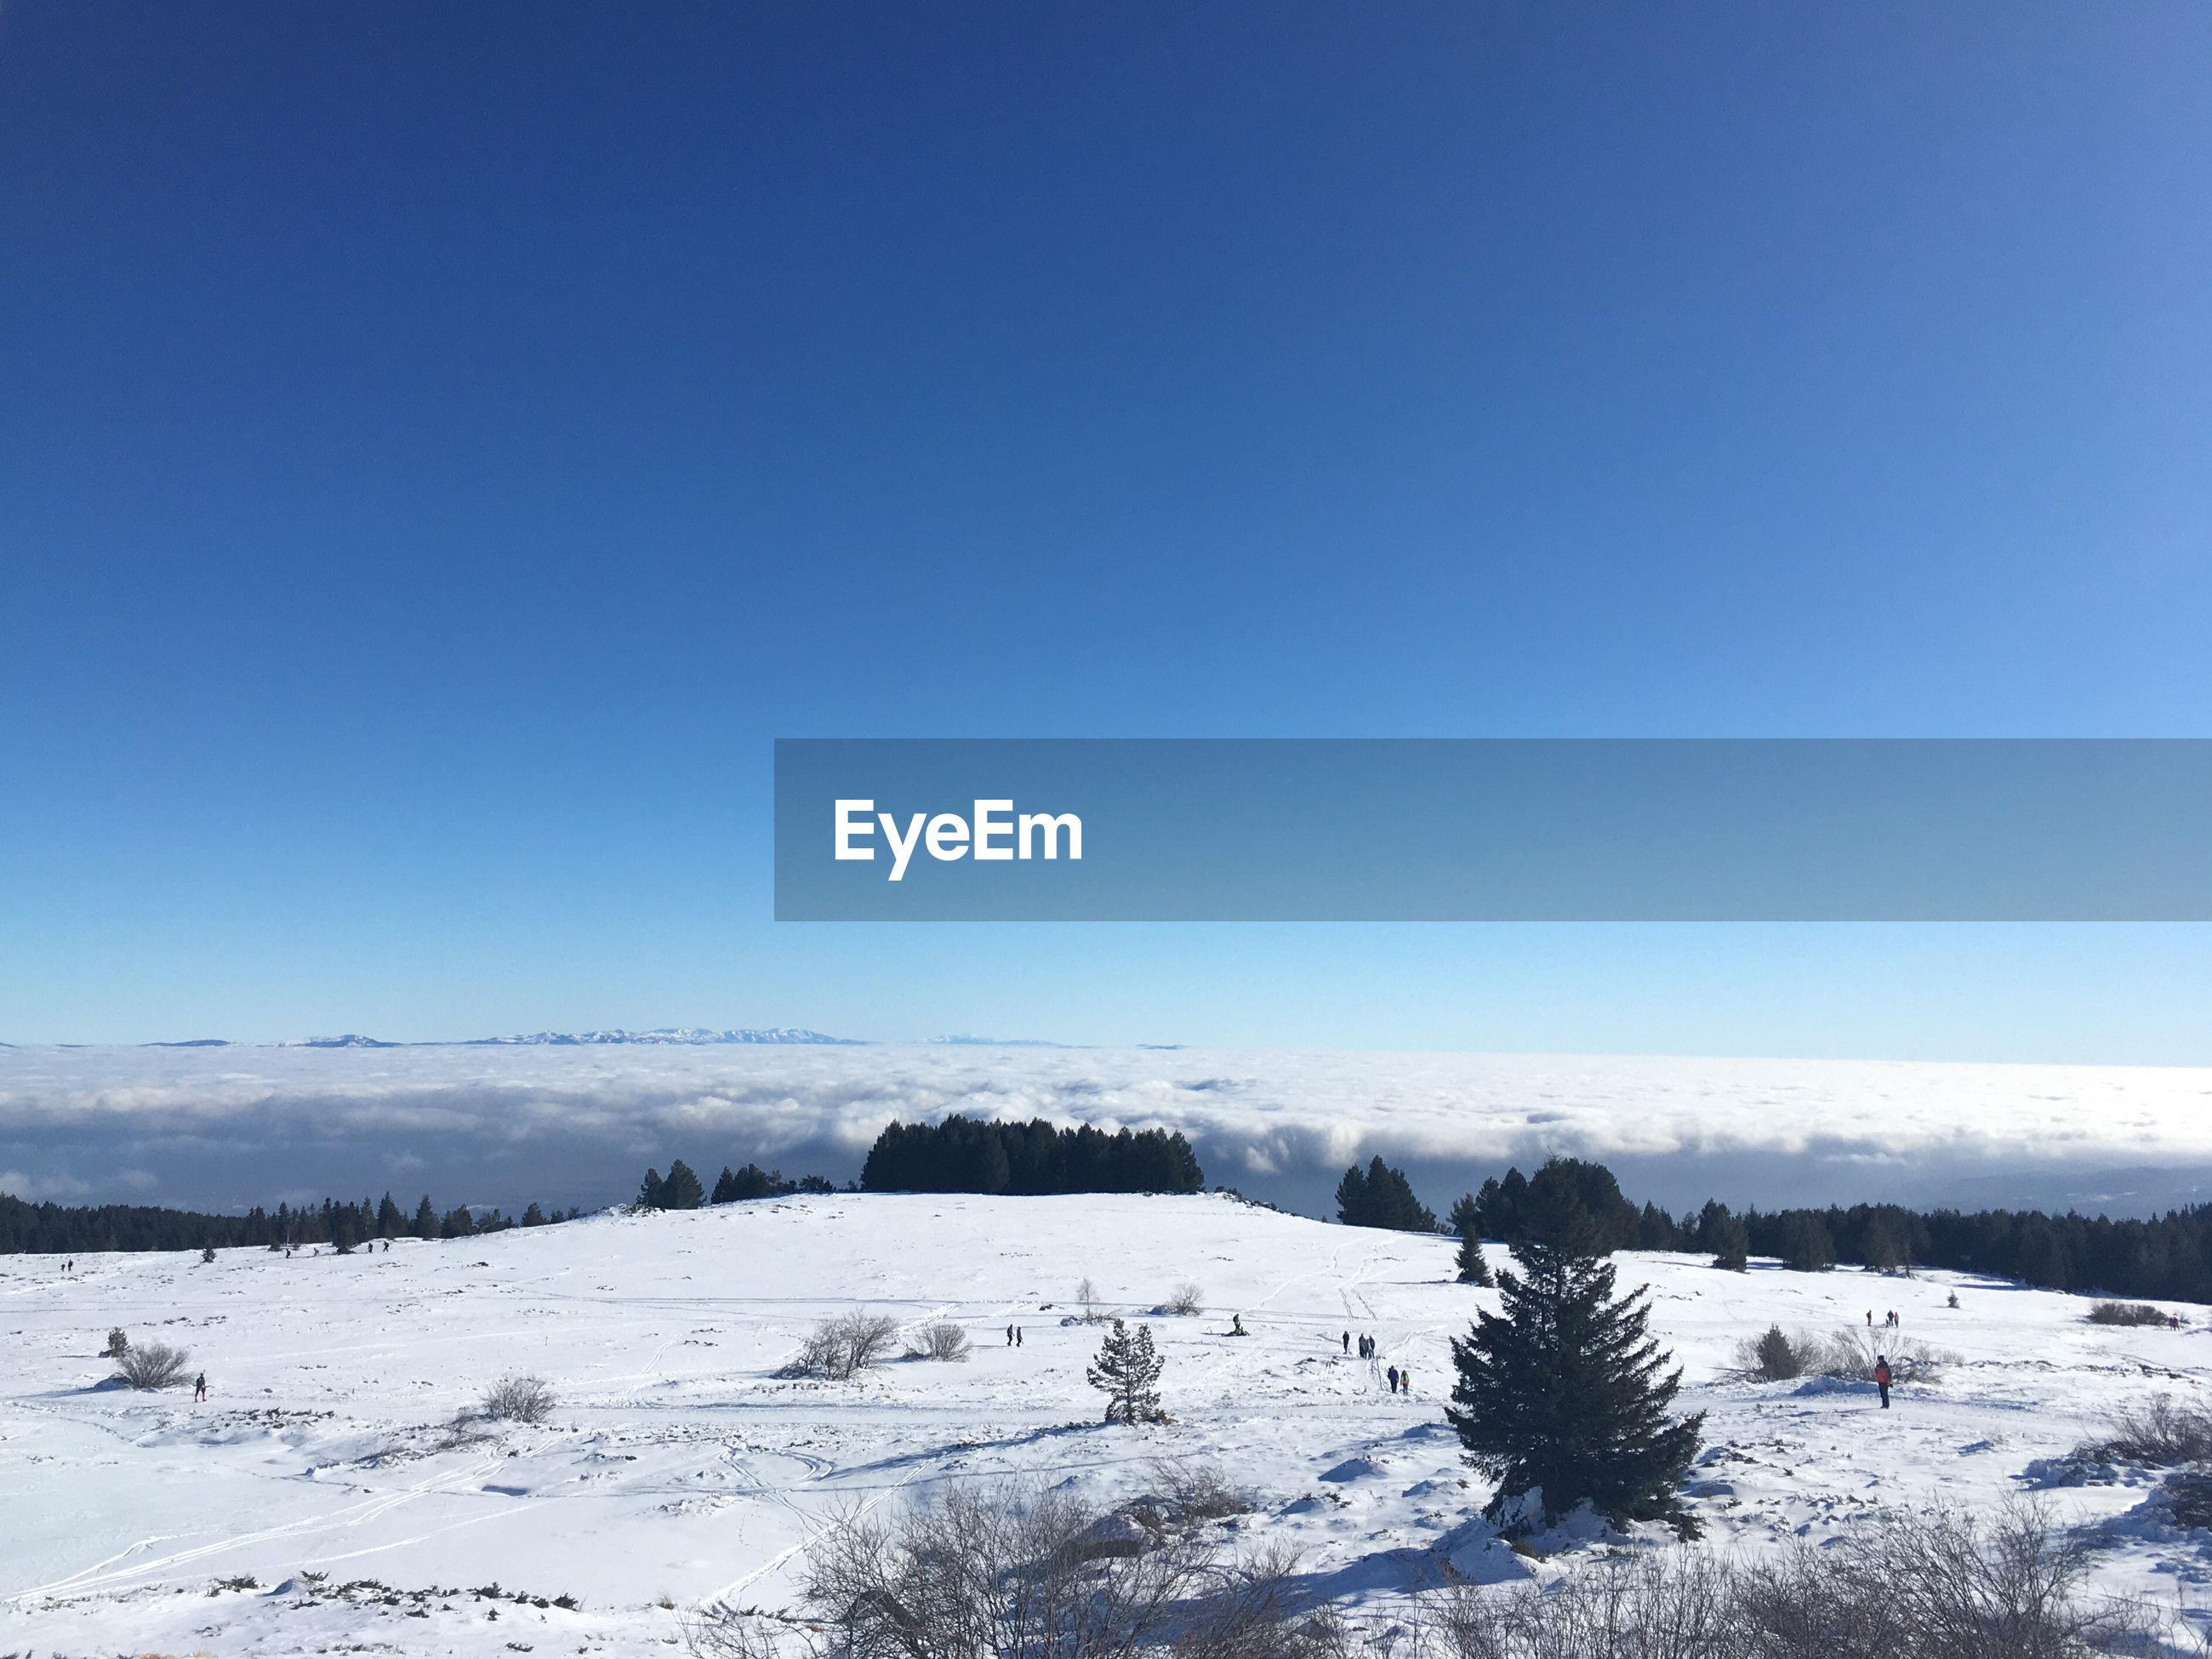 SCENIC VIEW OF SNOWCAPPED LANDSCAPE AGAINST CLEAR SKY